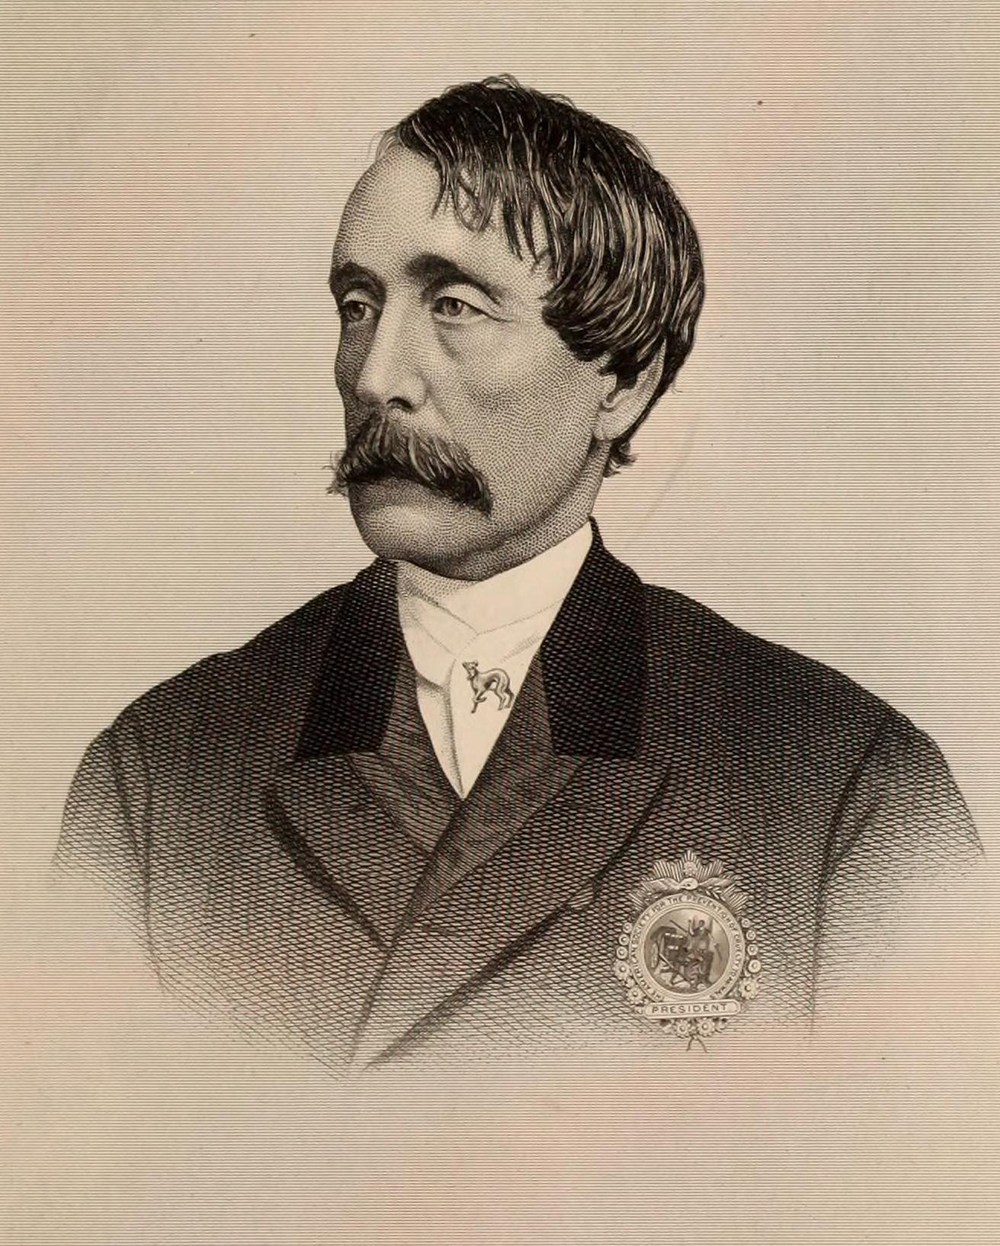 Illustration of Henry Bergh by George E. Perine, 1884.